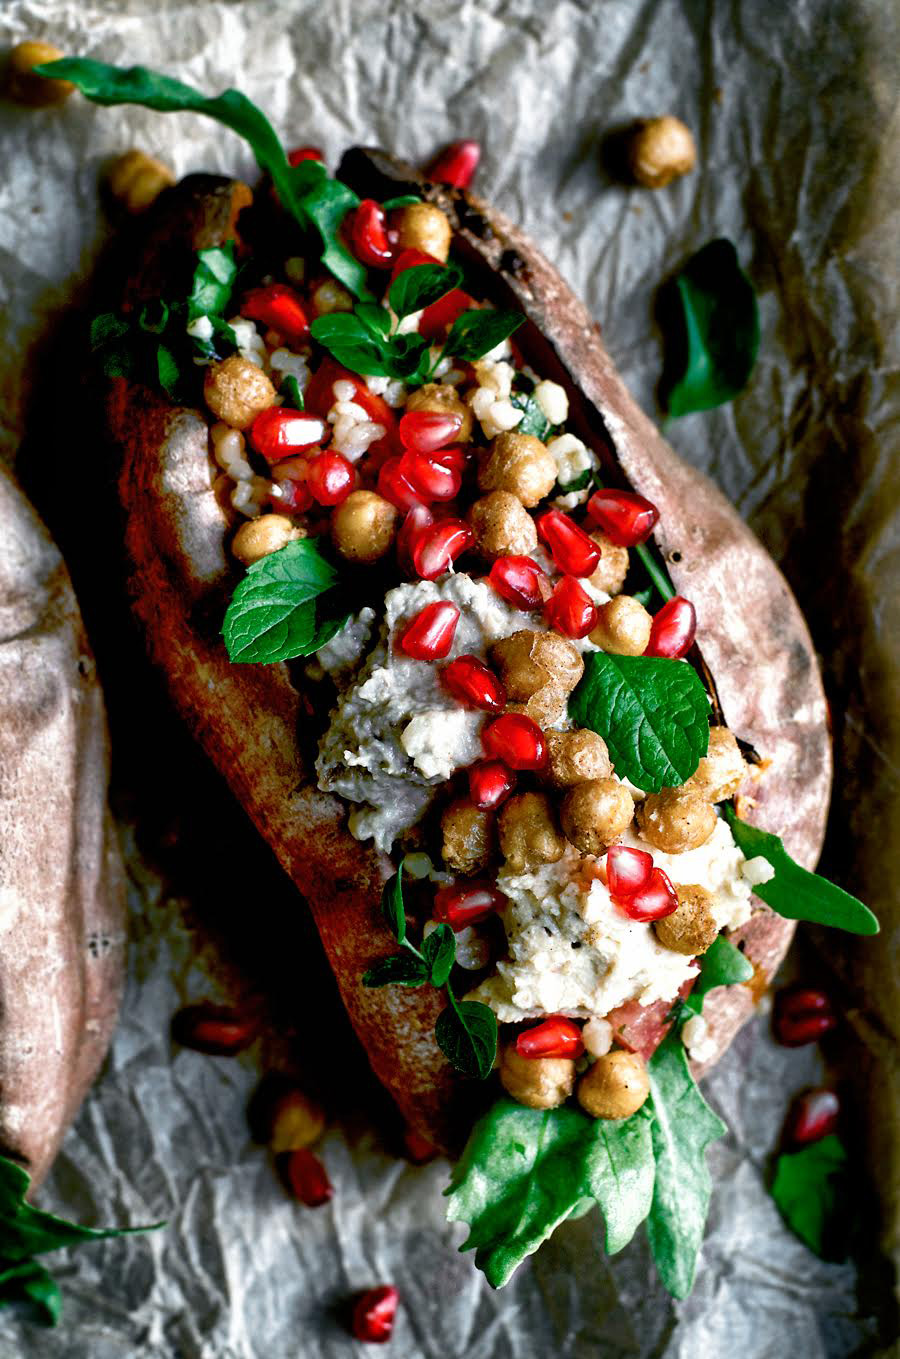 Stuffed sweet potato with greens, hummus, chickpeas, and pomegranate on baking sheet.